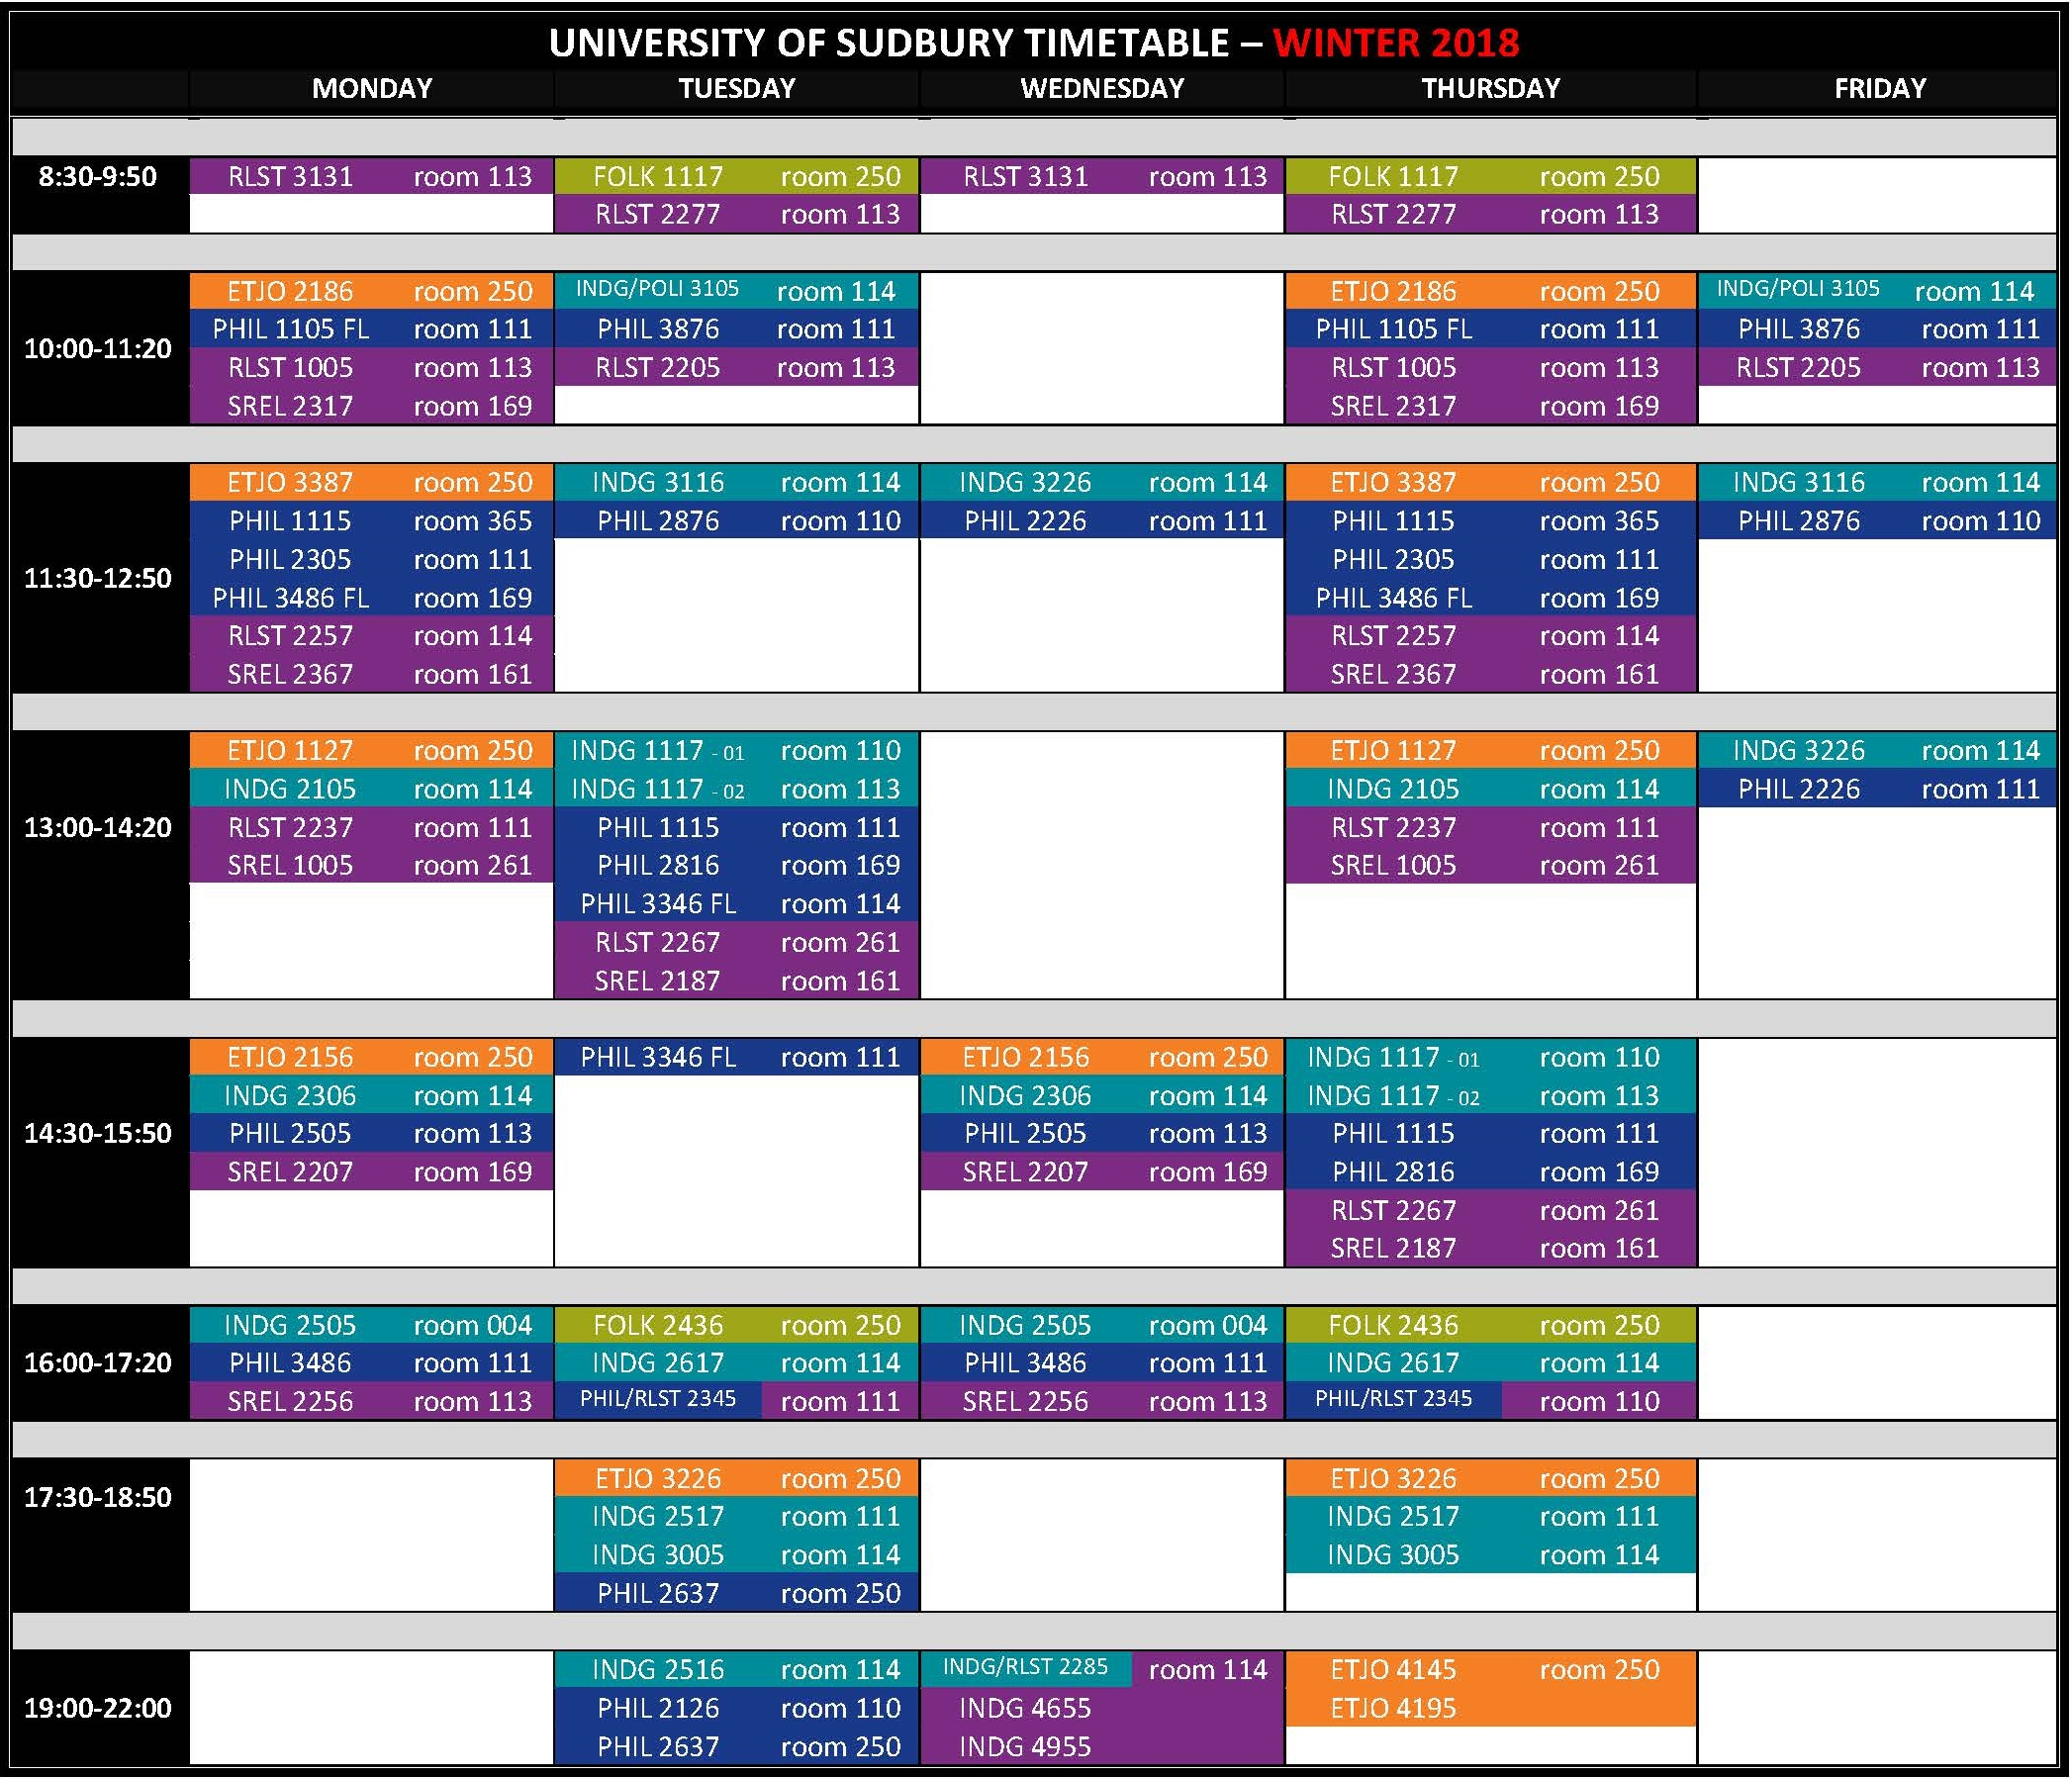 UNIVERSITY OF SUDBURY TIMETABLE 2017 2018 Winter 2018.4